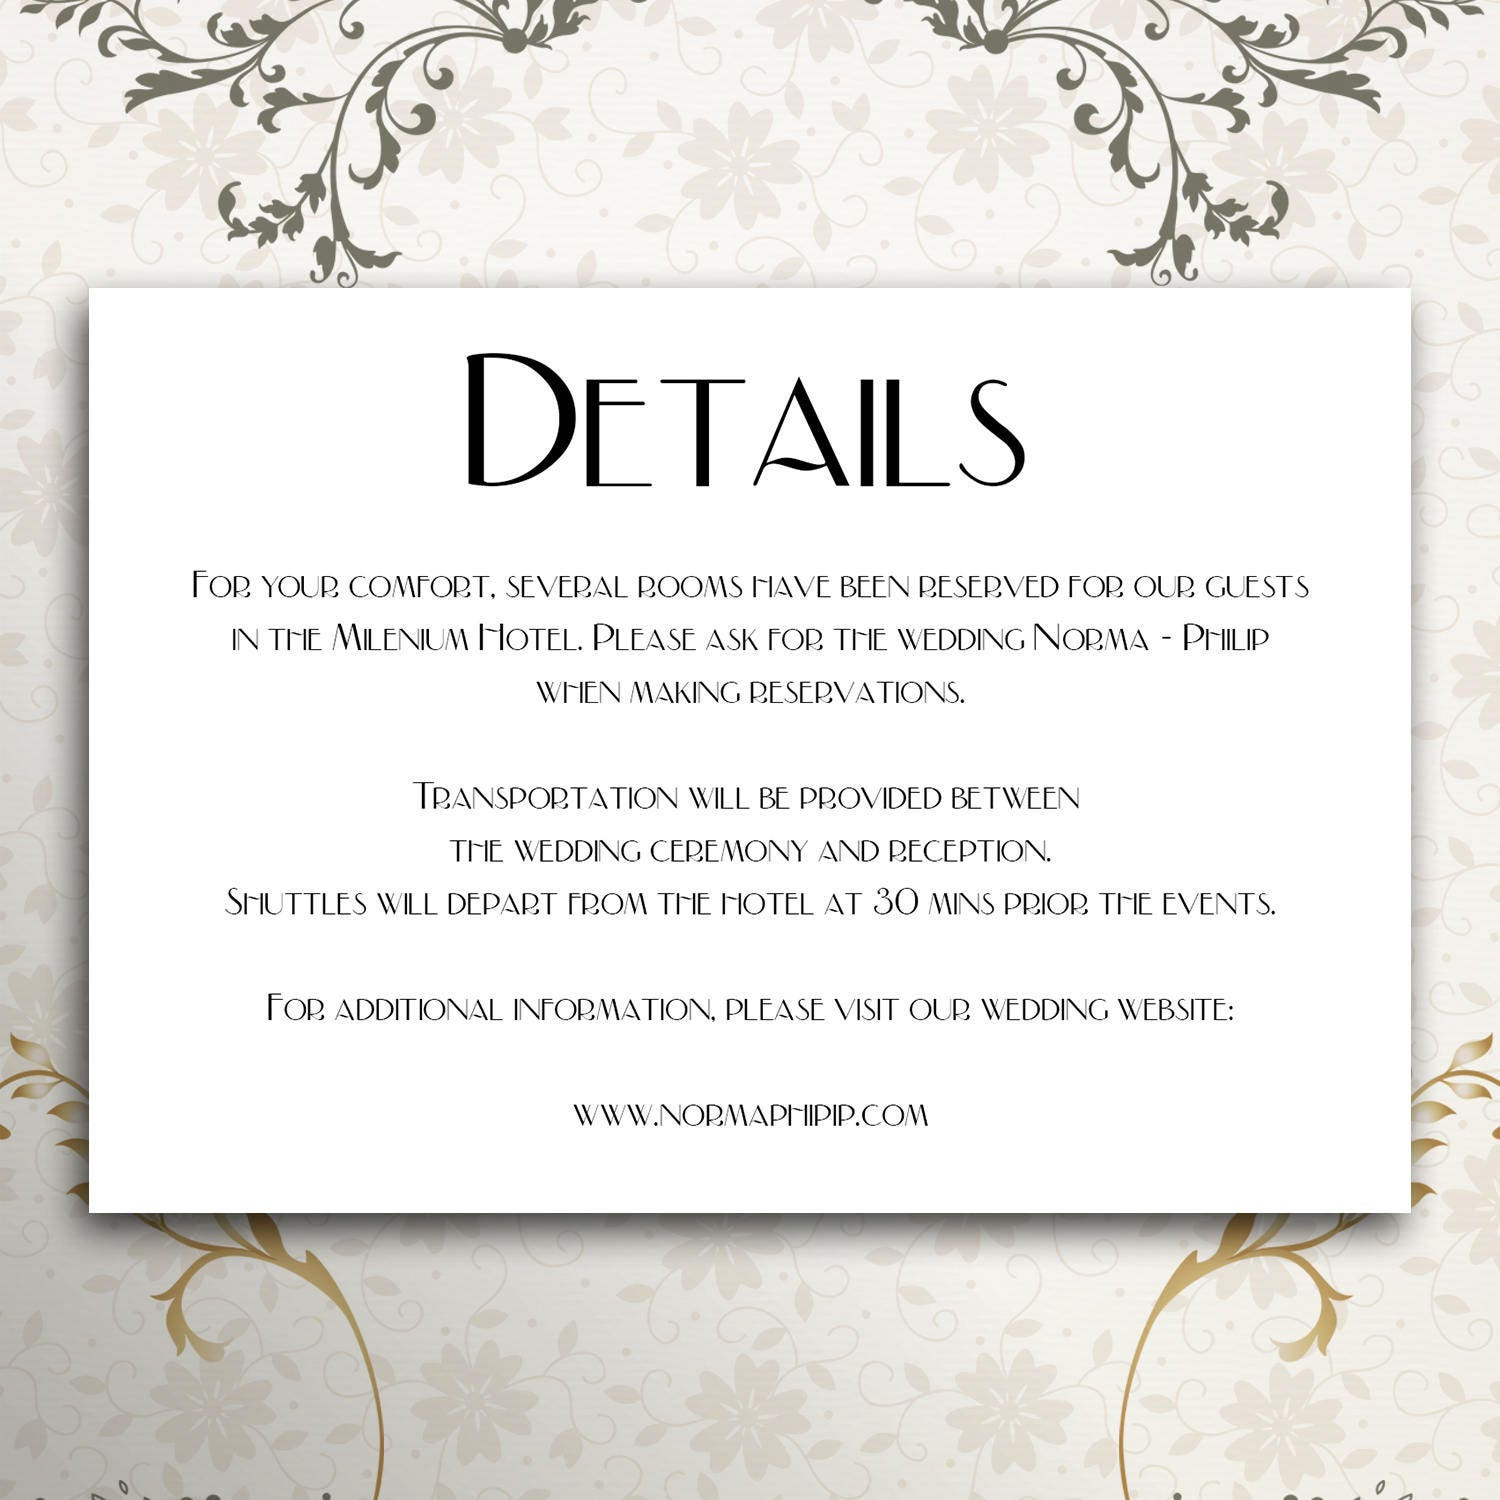 Details card details template wedding invitation wedding details details card details template wedding invitation wedding details template wedding invitation instand stopboris Images